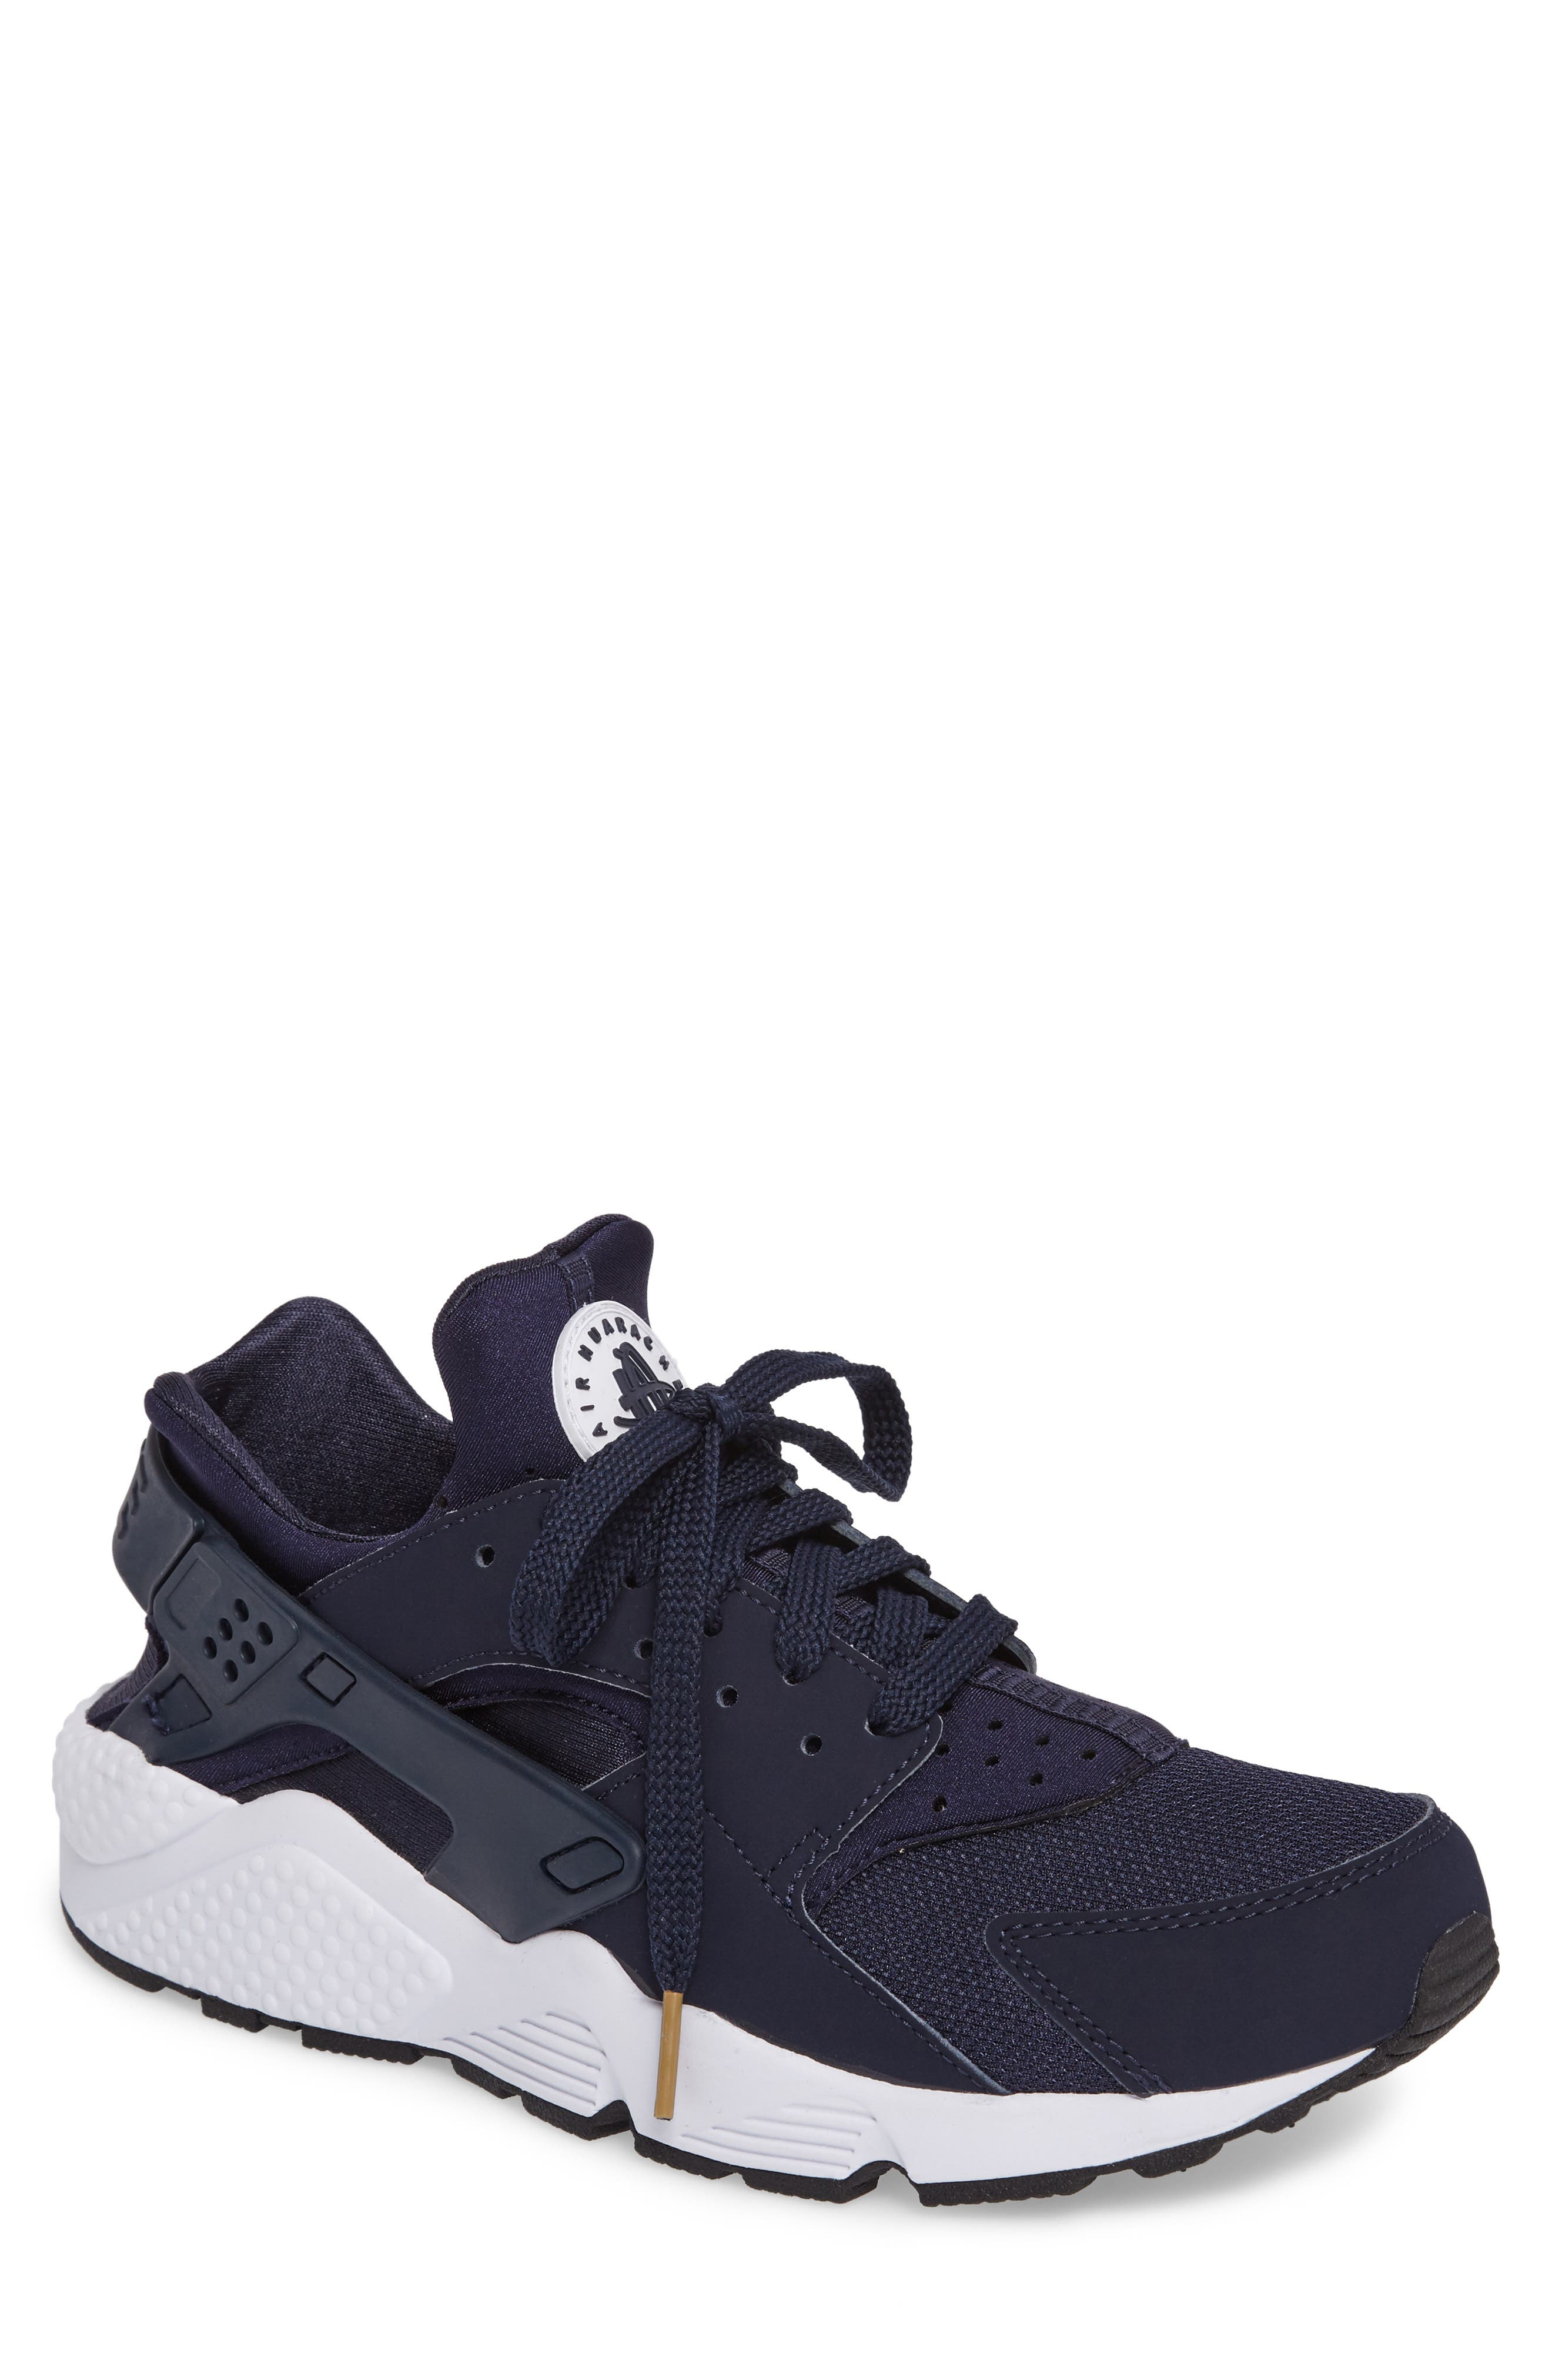 Alternate Image 1 Selected - Nike 'Air Huarache' Sneaker (Men)